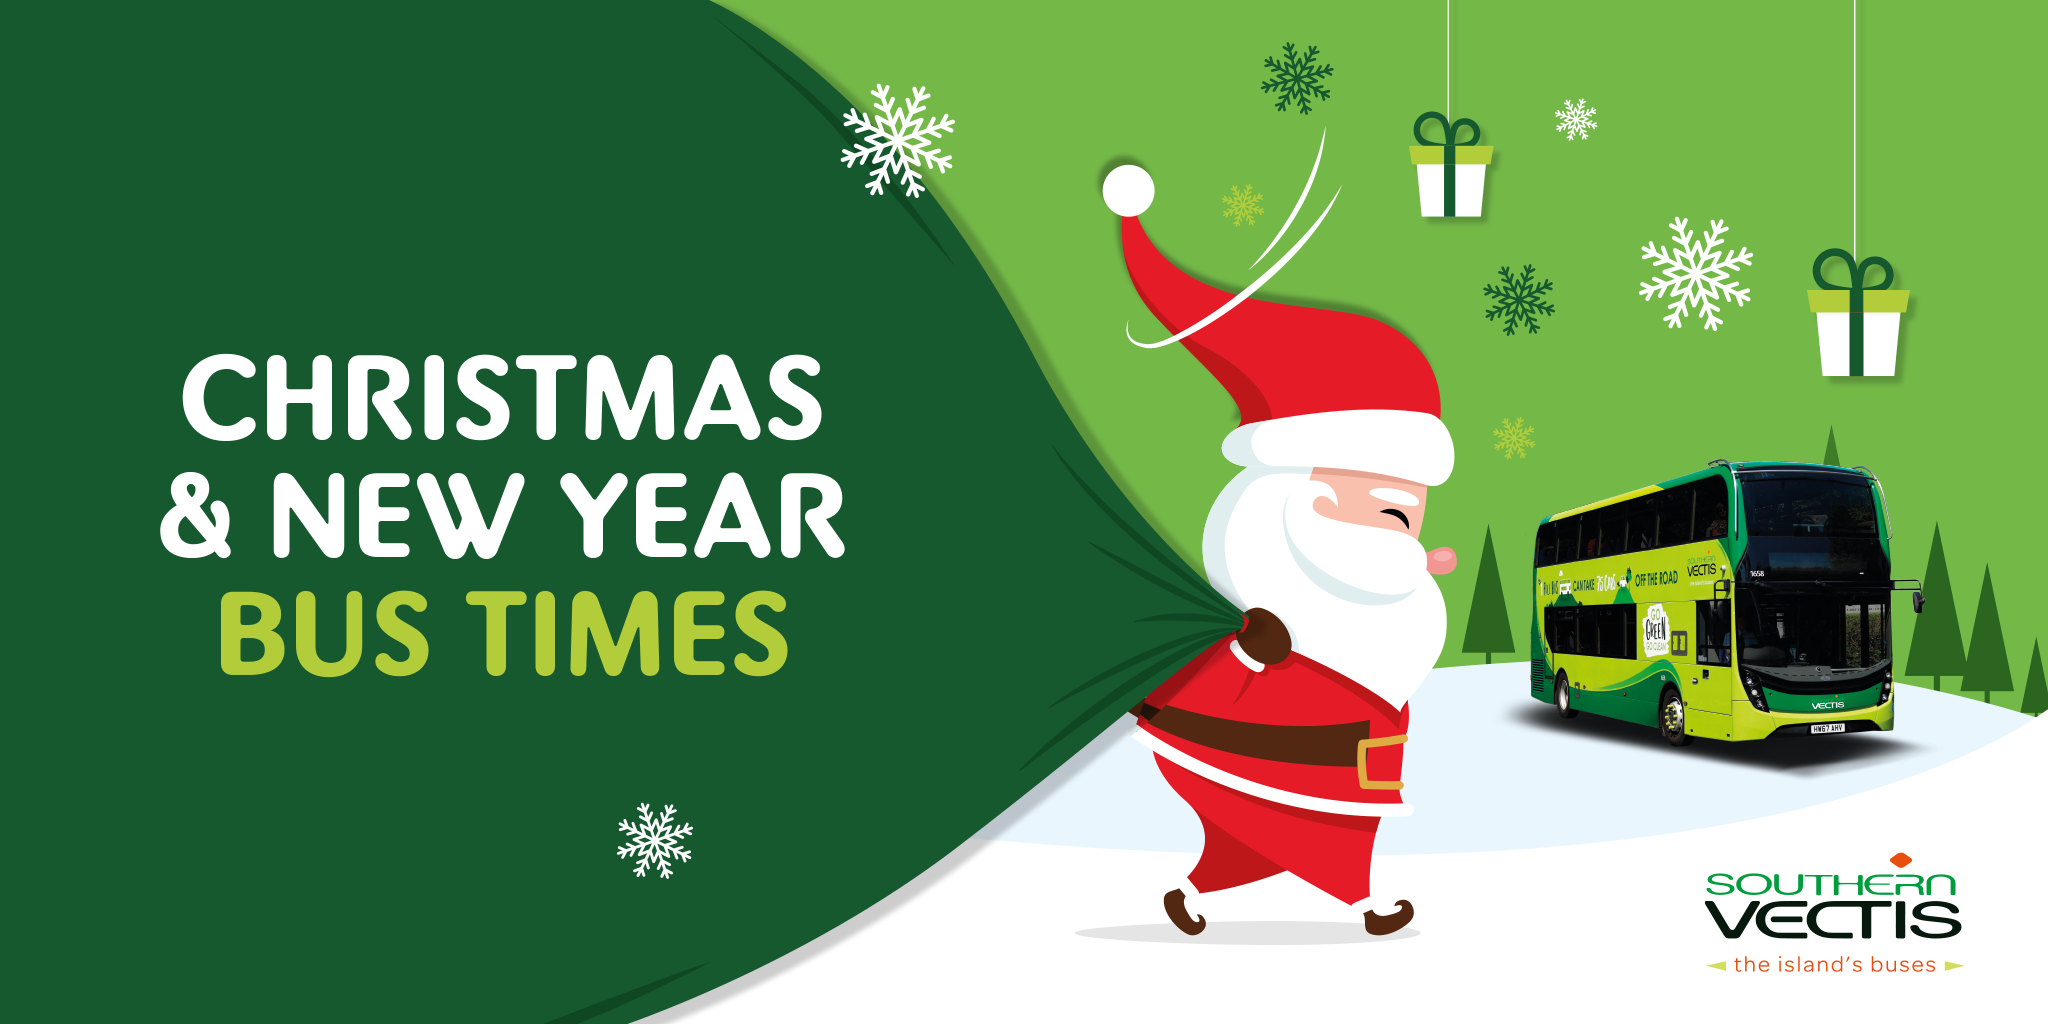 christmas and new year bus times with father christmas and a SV bus